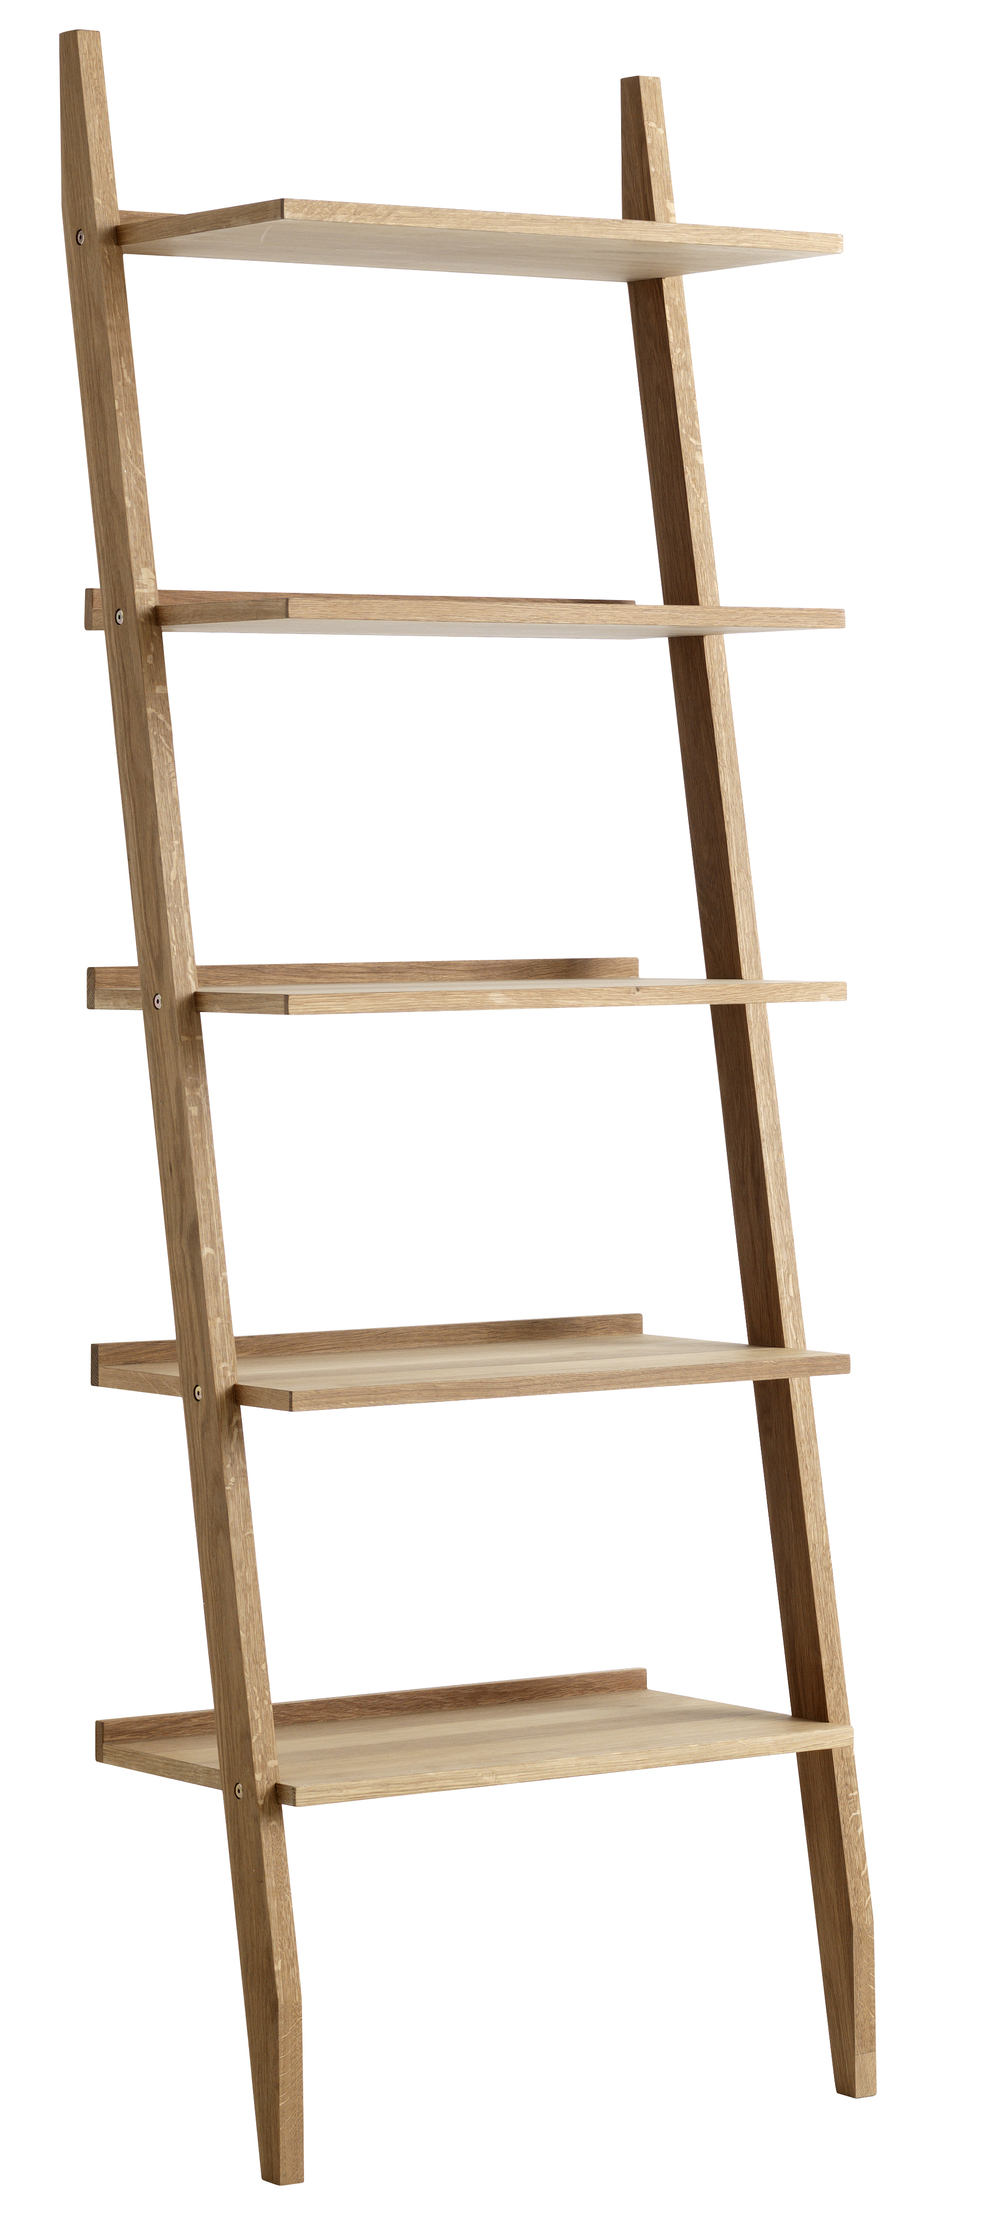 RIV95 Ladder Shelving Unit 33268.jpg